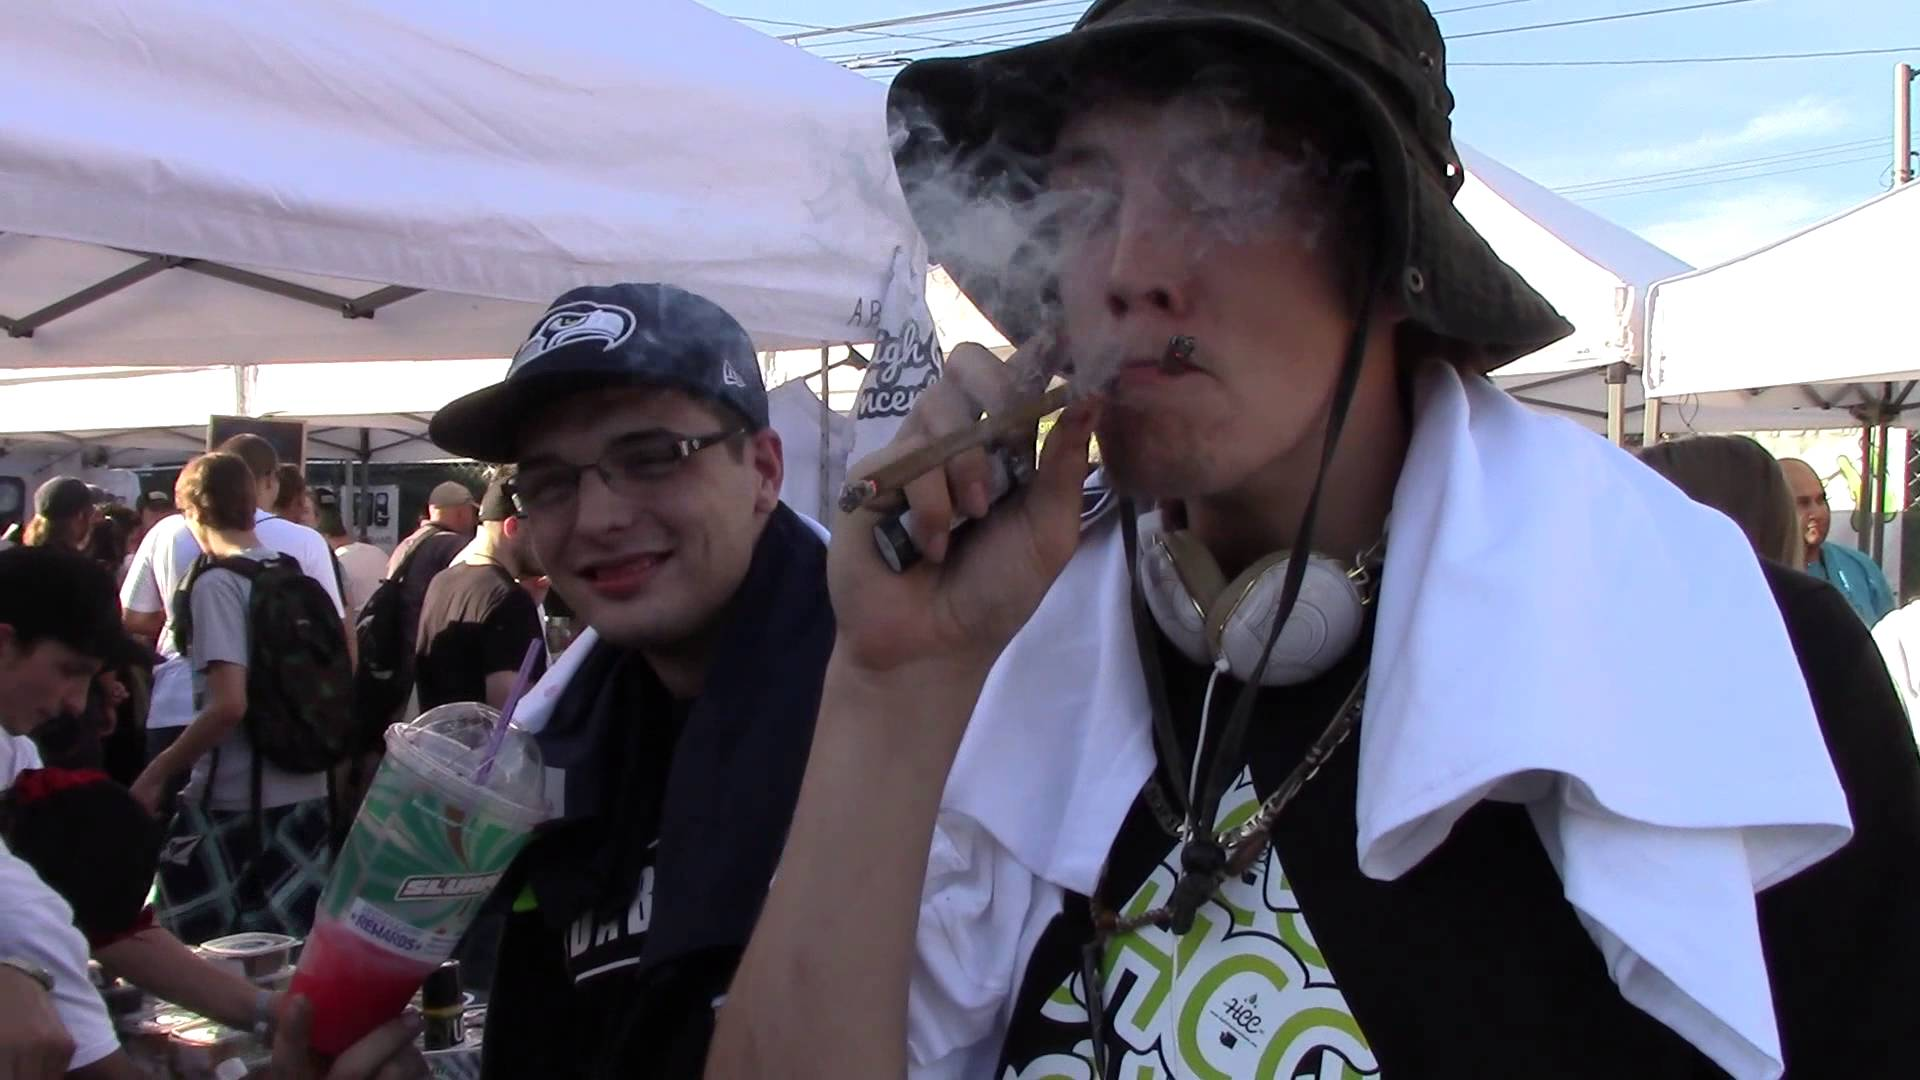 2nd US High Times Cannabis Cup, Seattle 2013 -CRTV